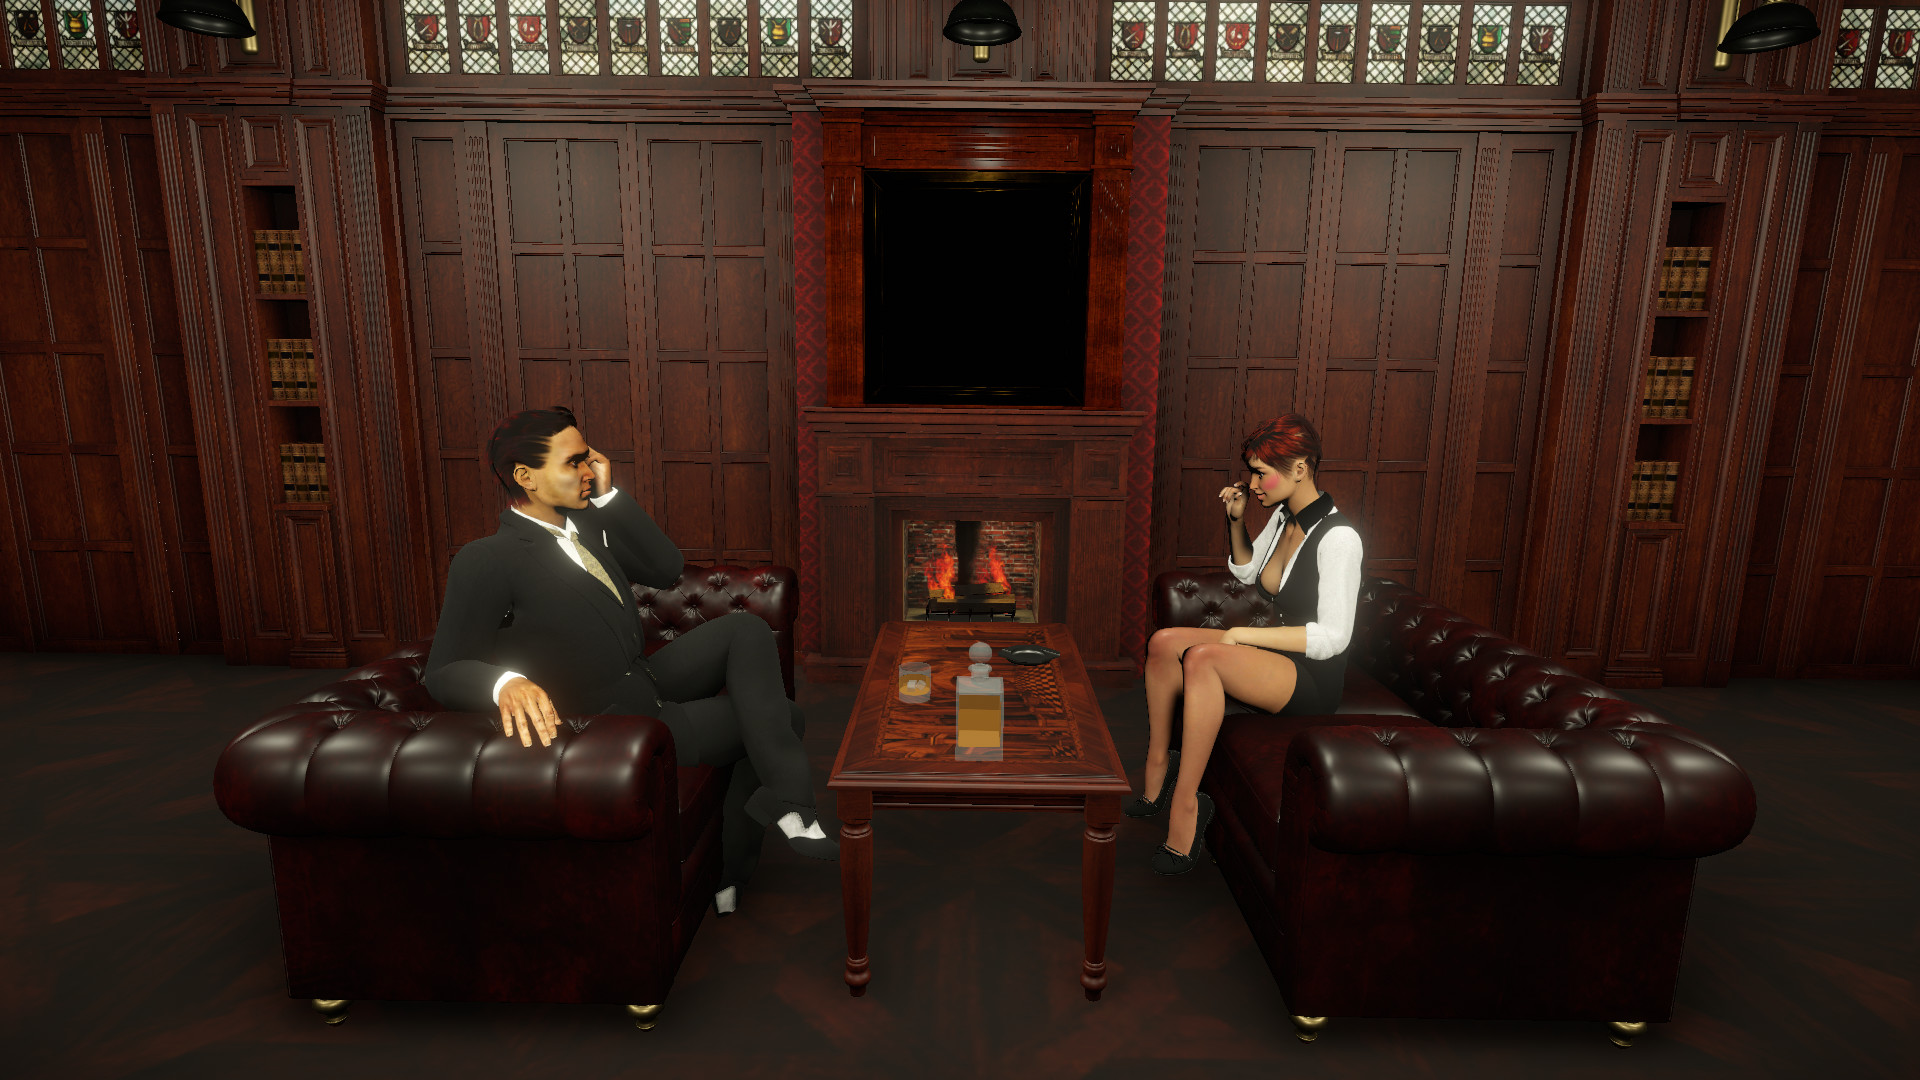 Mafia gangsters for 3D Visual Novel Maker screenshot